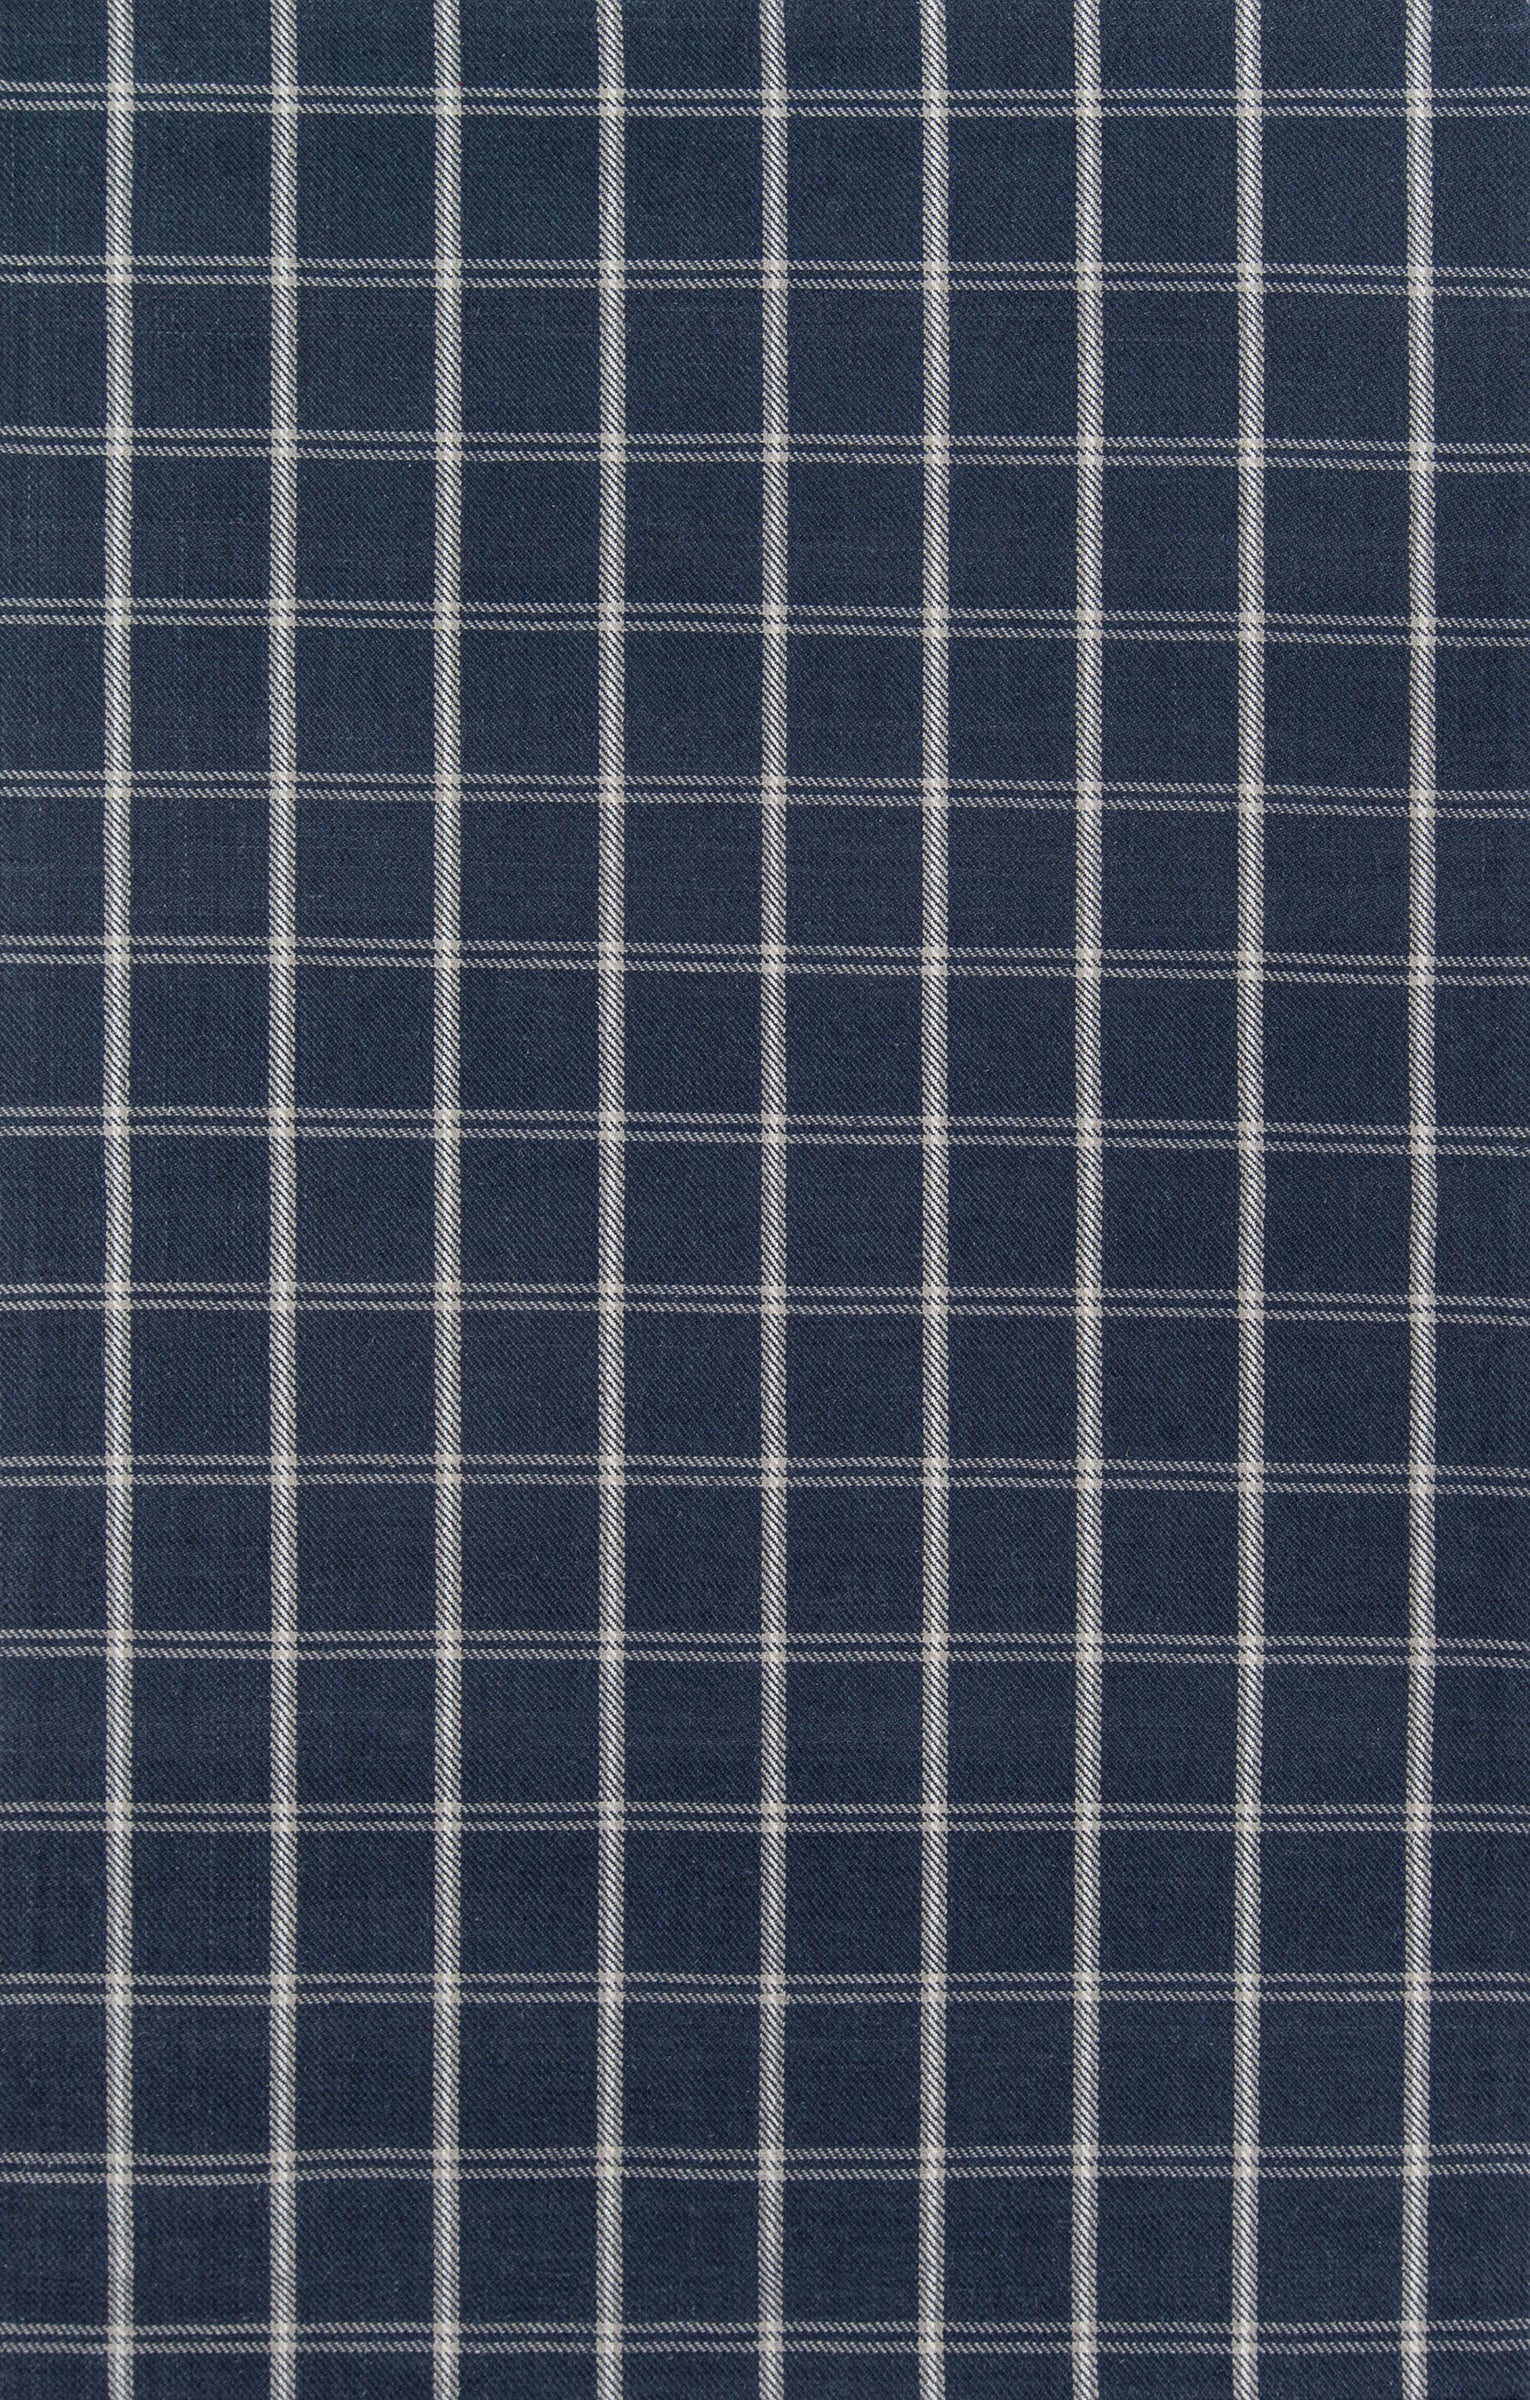 Navy Blue Plaid Tartan Wool Area Rug - Erin Gates - Marlborough